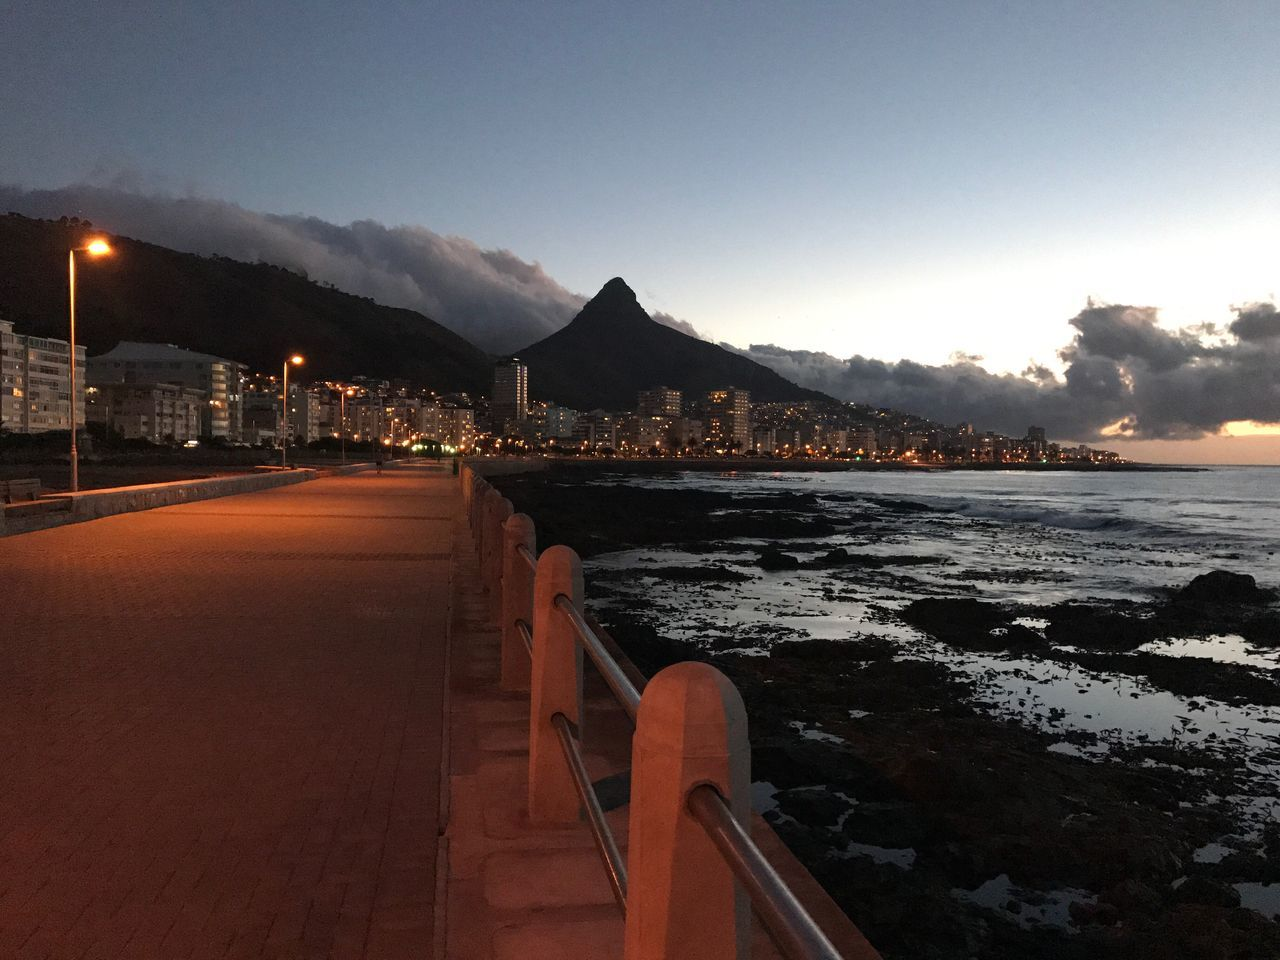 City by night Water Sky Mountain Beauty In Nature Sea Point Adapted To The City Sea Point Promenade City Lights At Night